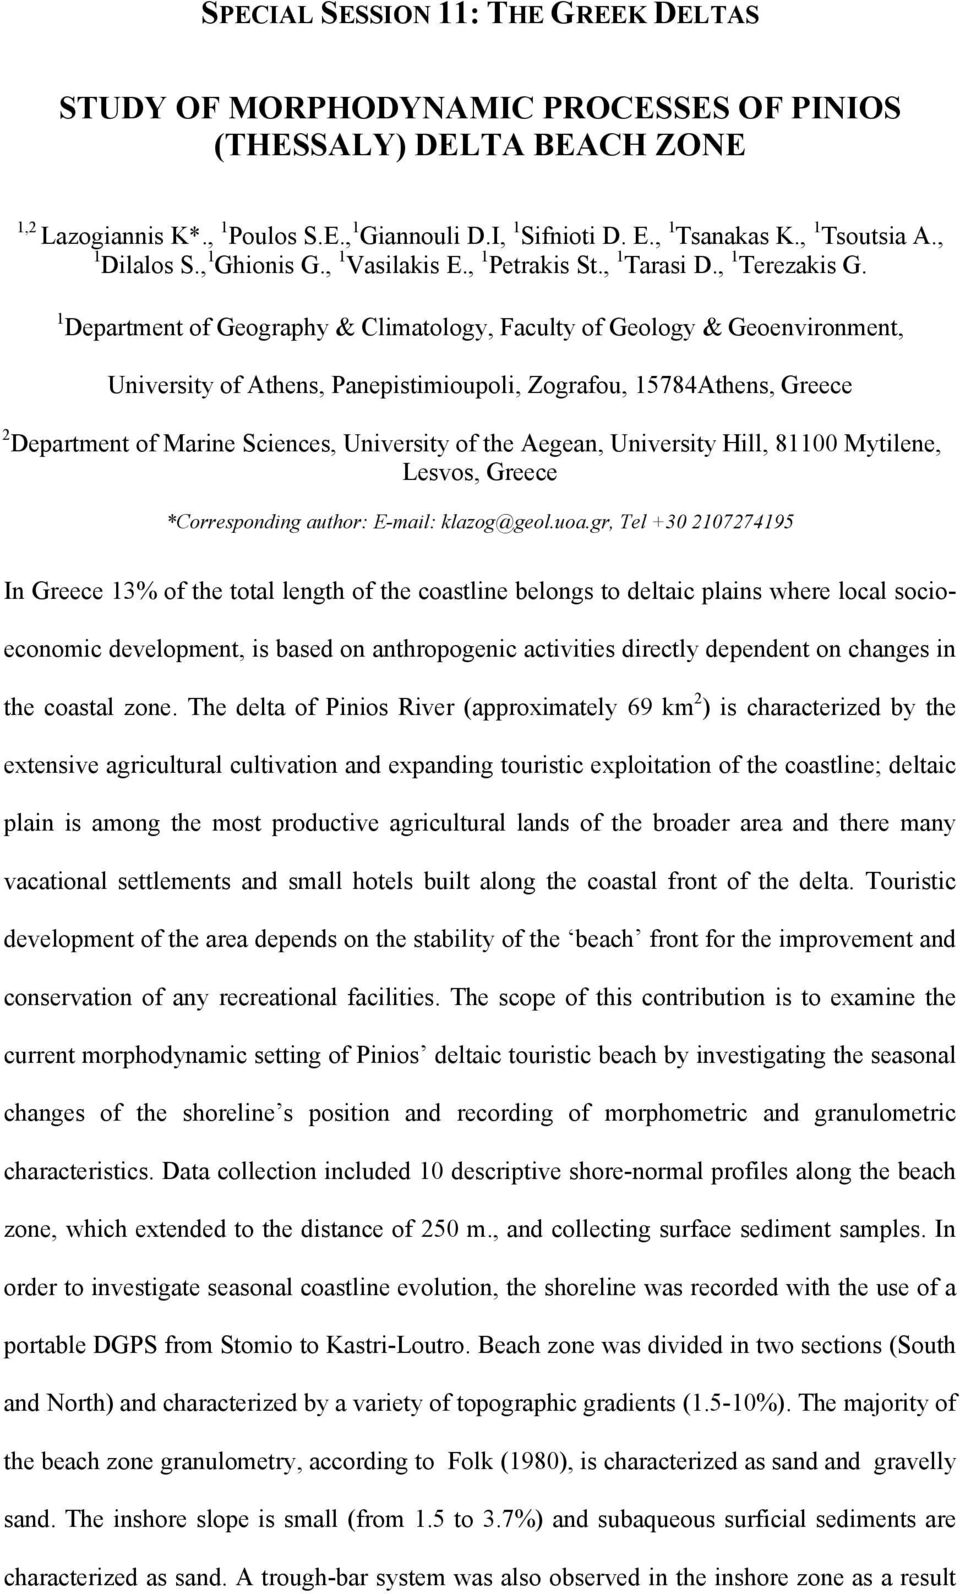 1 Department of Geography & Climatology, Faculty of Geology & Geoenvironment, University of Athens, Panepistimioupoli, Zografou, 15784Athens, Greece 2 Department of Marine Sciences, University of the